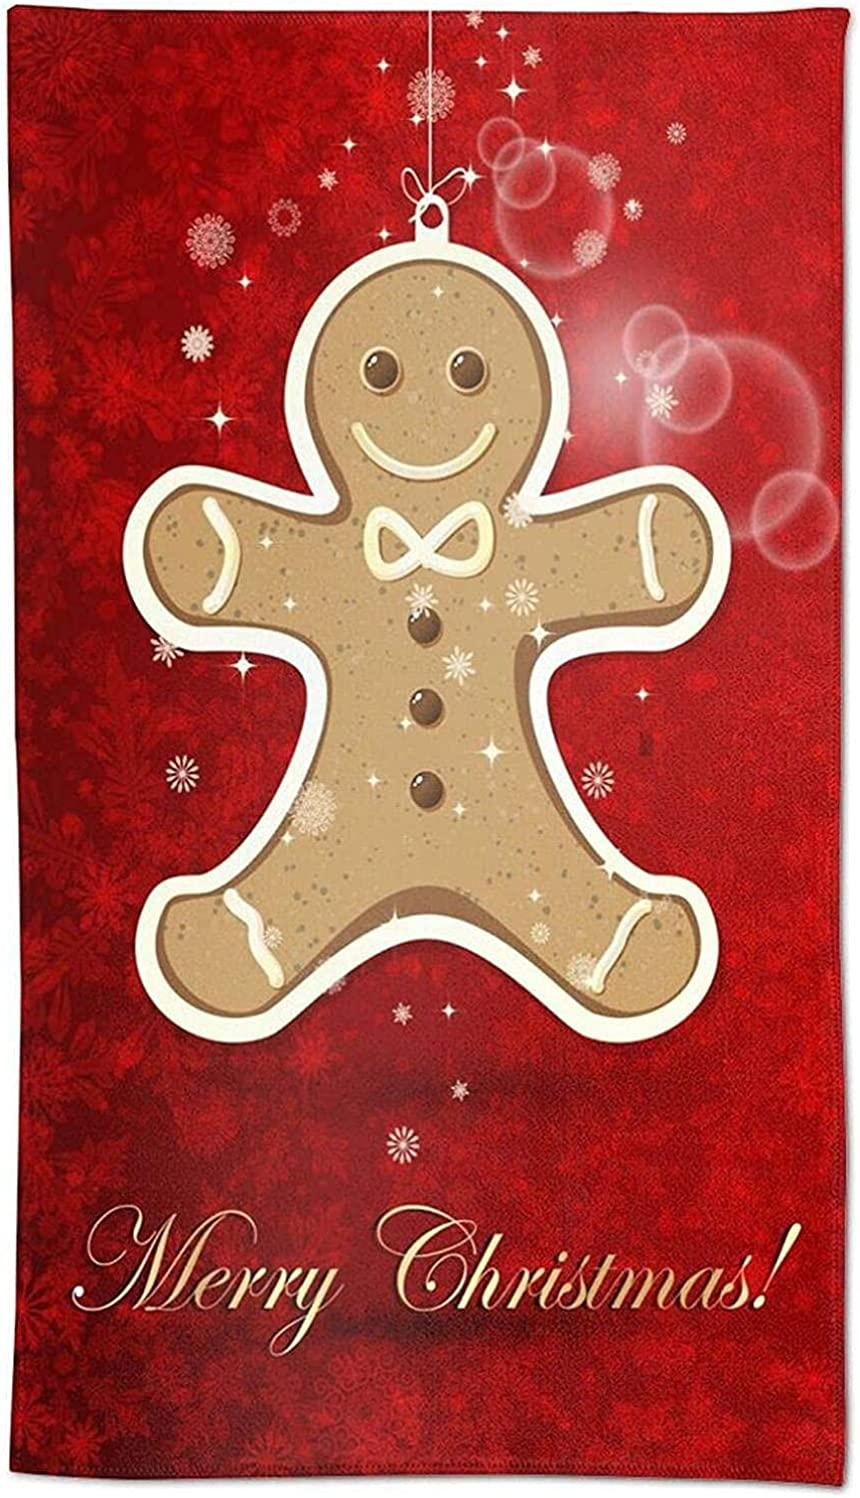 Hand Towels Snow Snowflakes Cute New products world's highest quality popular Cheap mail order shopping Face Man Towel Gingerbread Deco